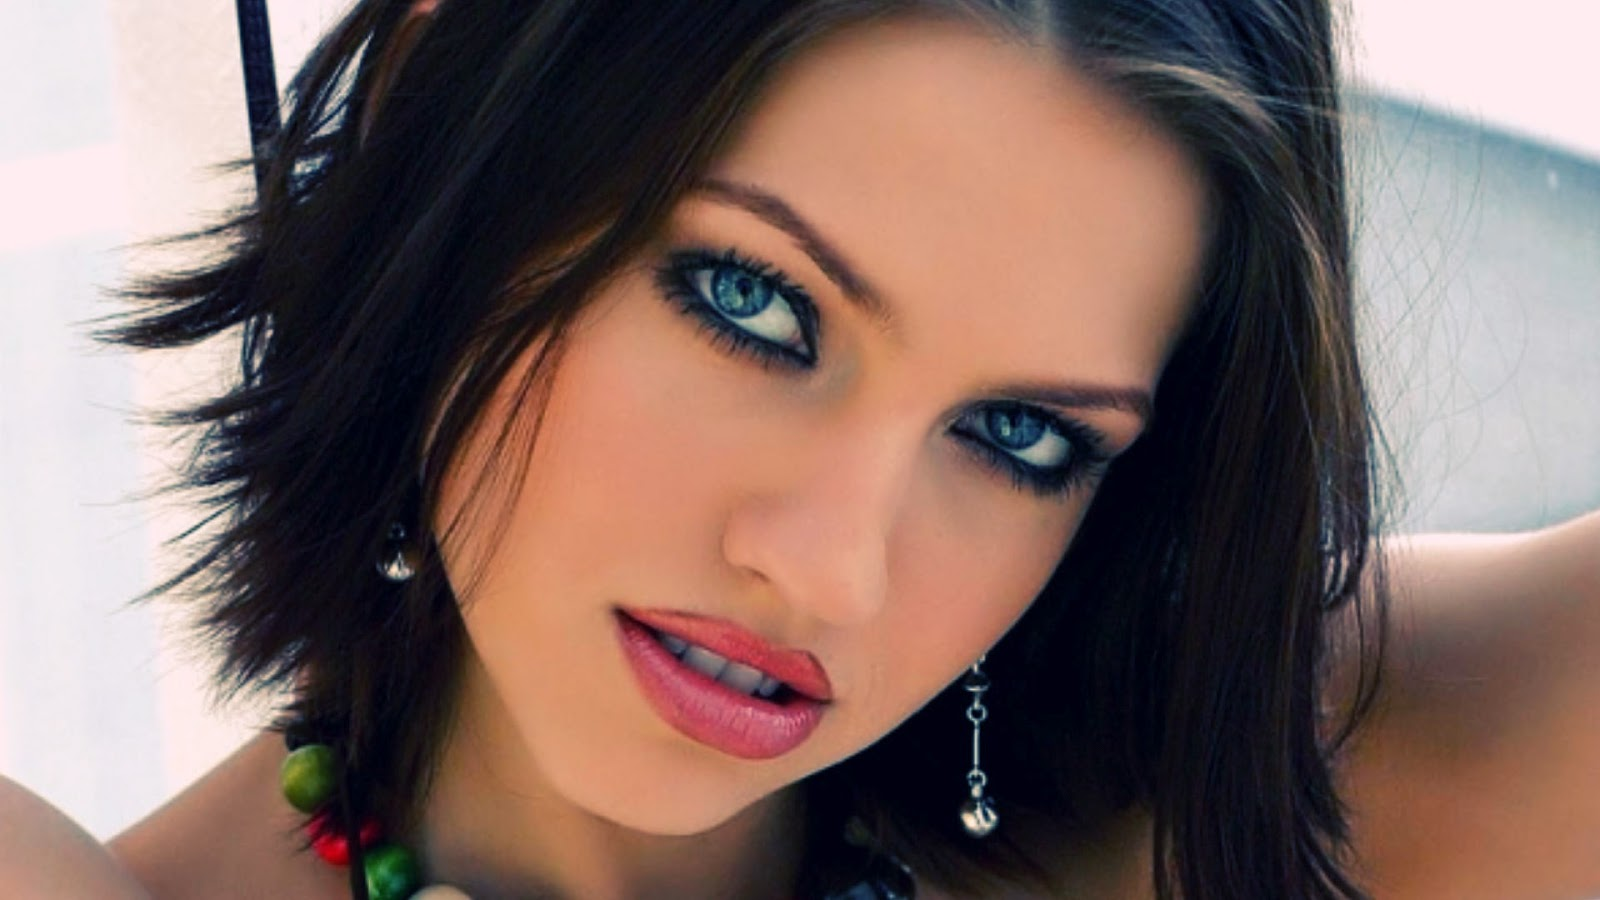 Best wallpapers collection cute girls face wallpaper Photo of a beautiful girl